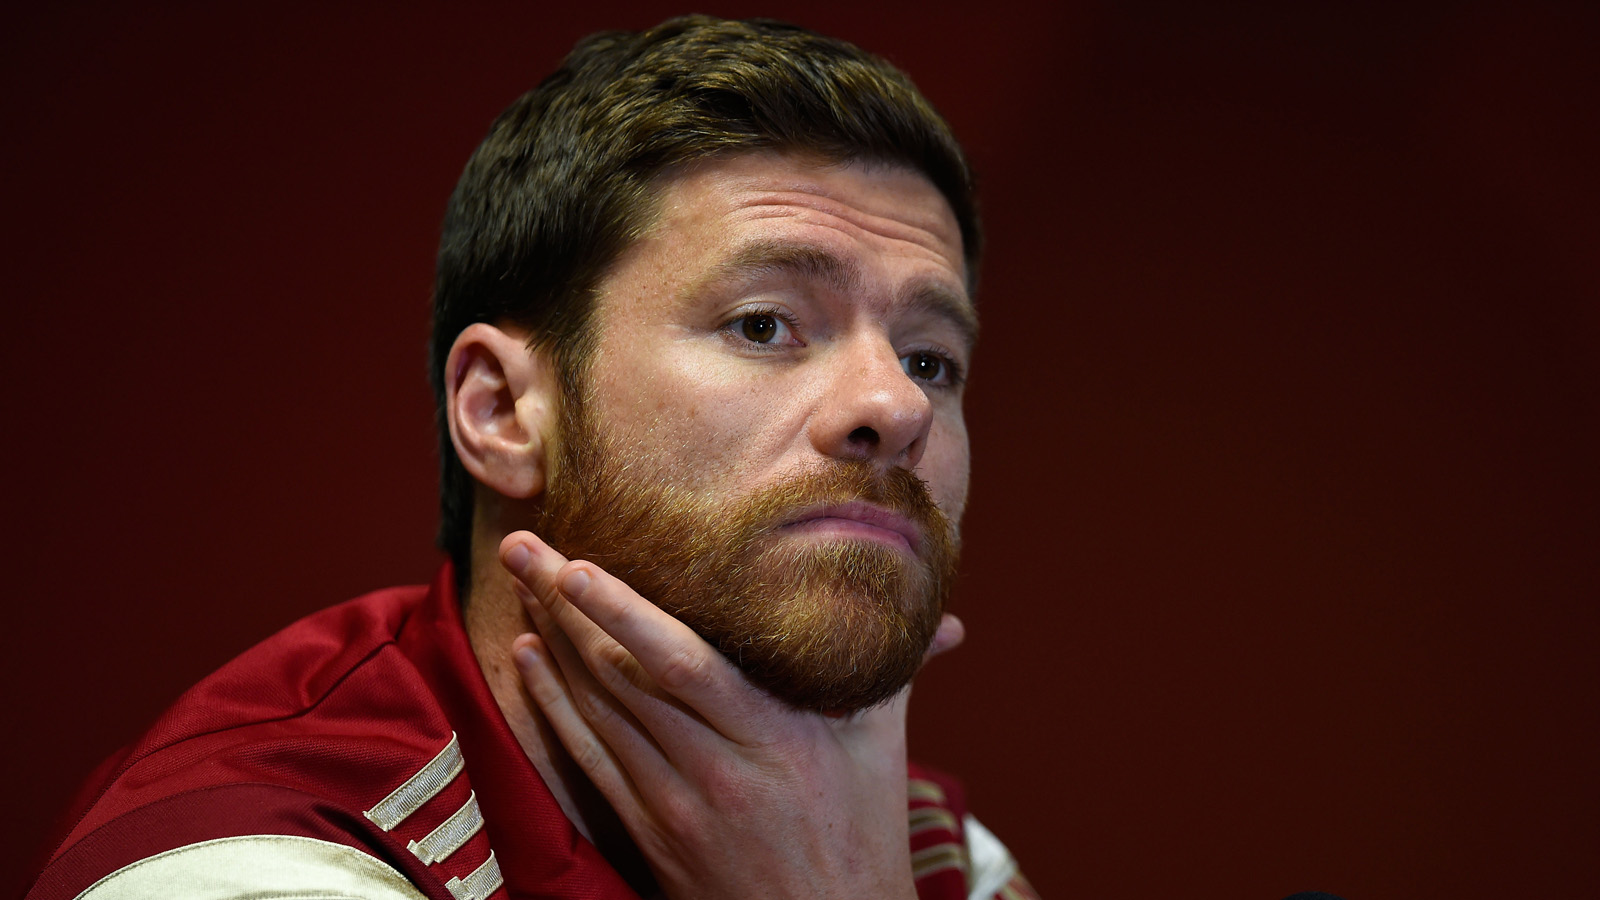 Xabi Alonso No Beard Tutorial Photoshop - C...